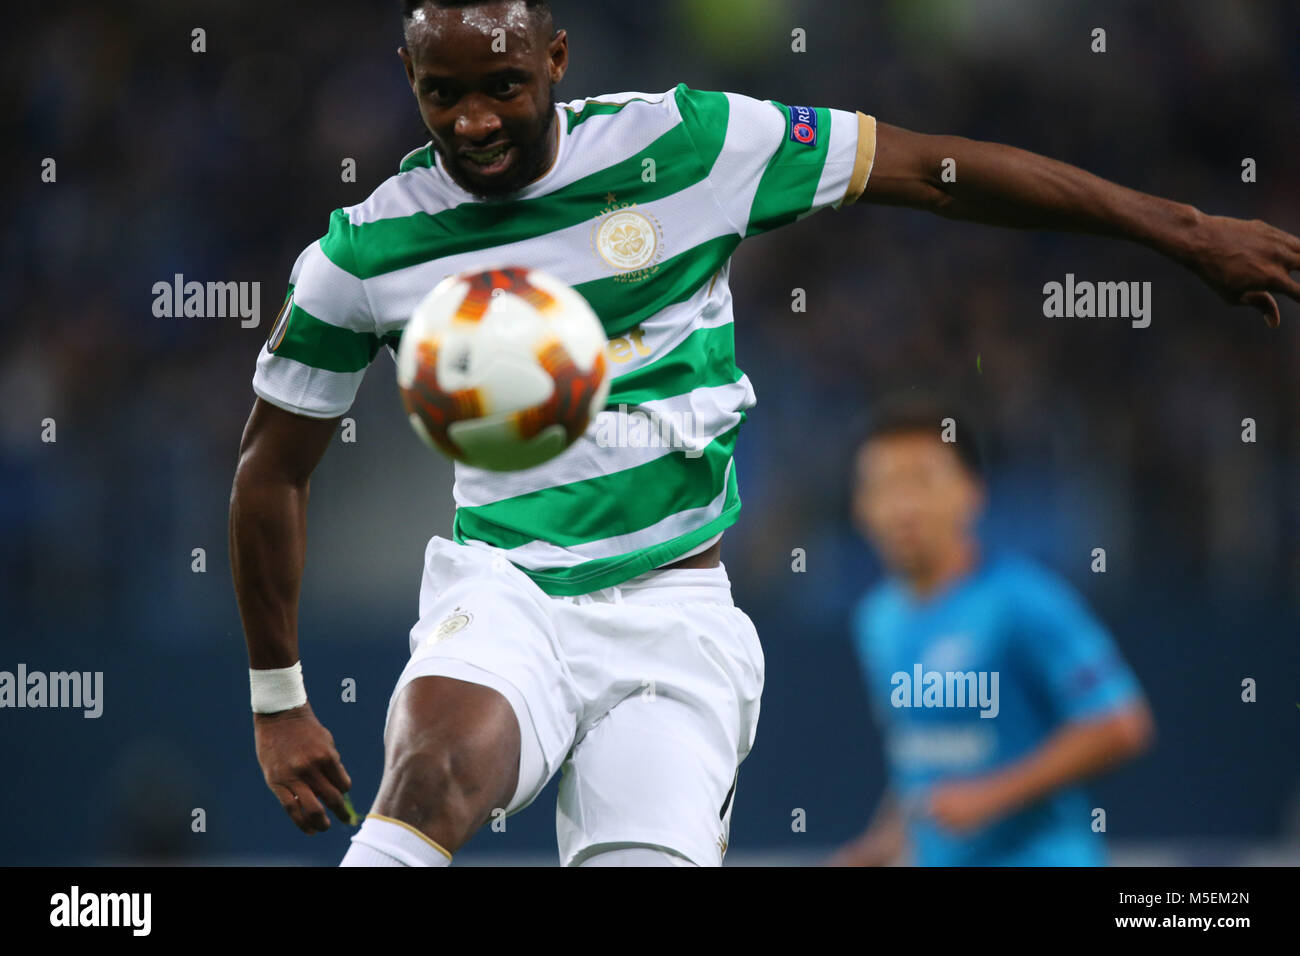 Saint Petersburg, Russia. 22nd Feb, 2018. Moussa Dembélé of FK Celtic vie for the ball during the UEFA - Stock Image